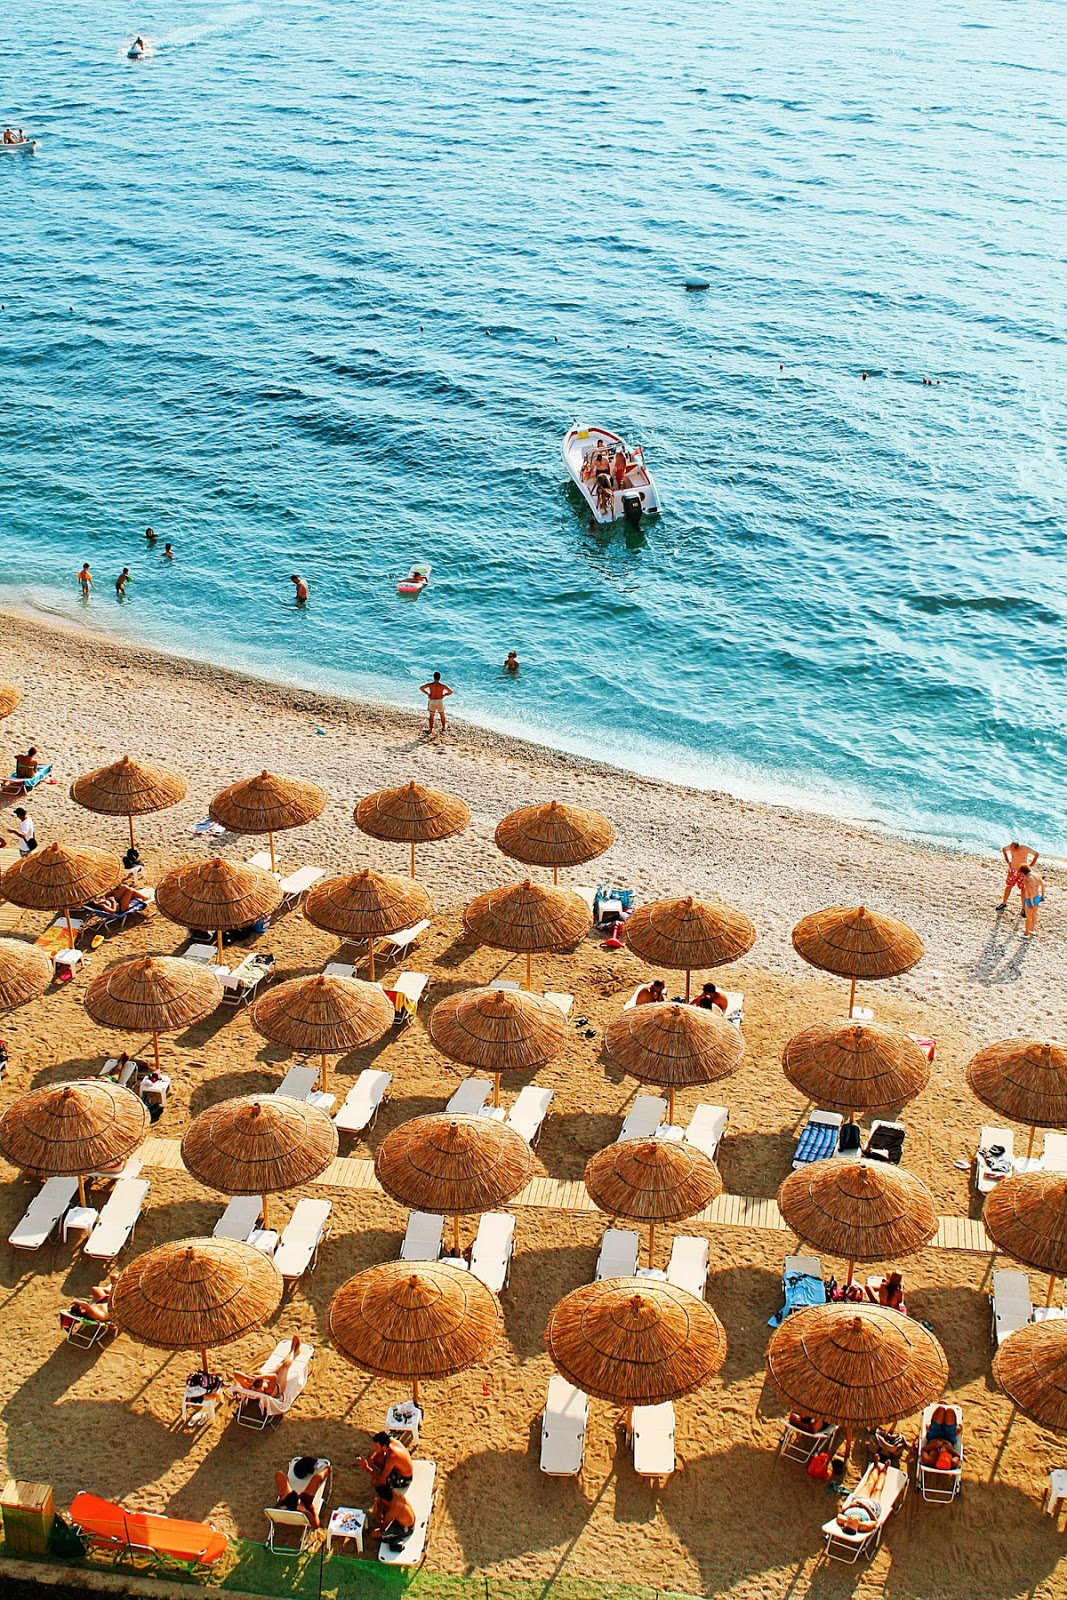 Beach in Saranda, Albania